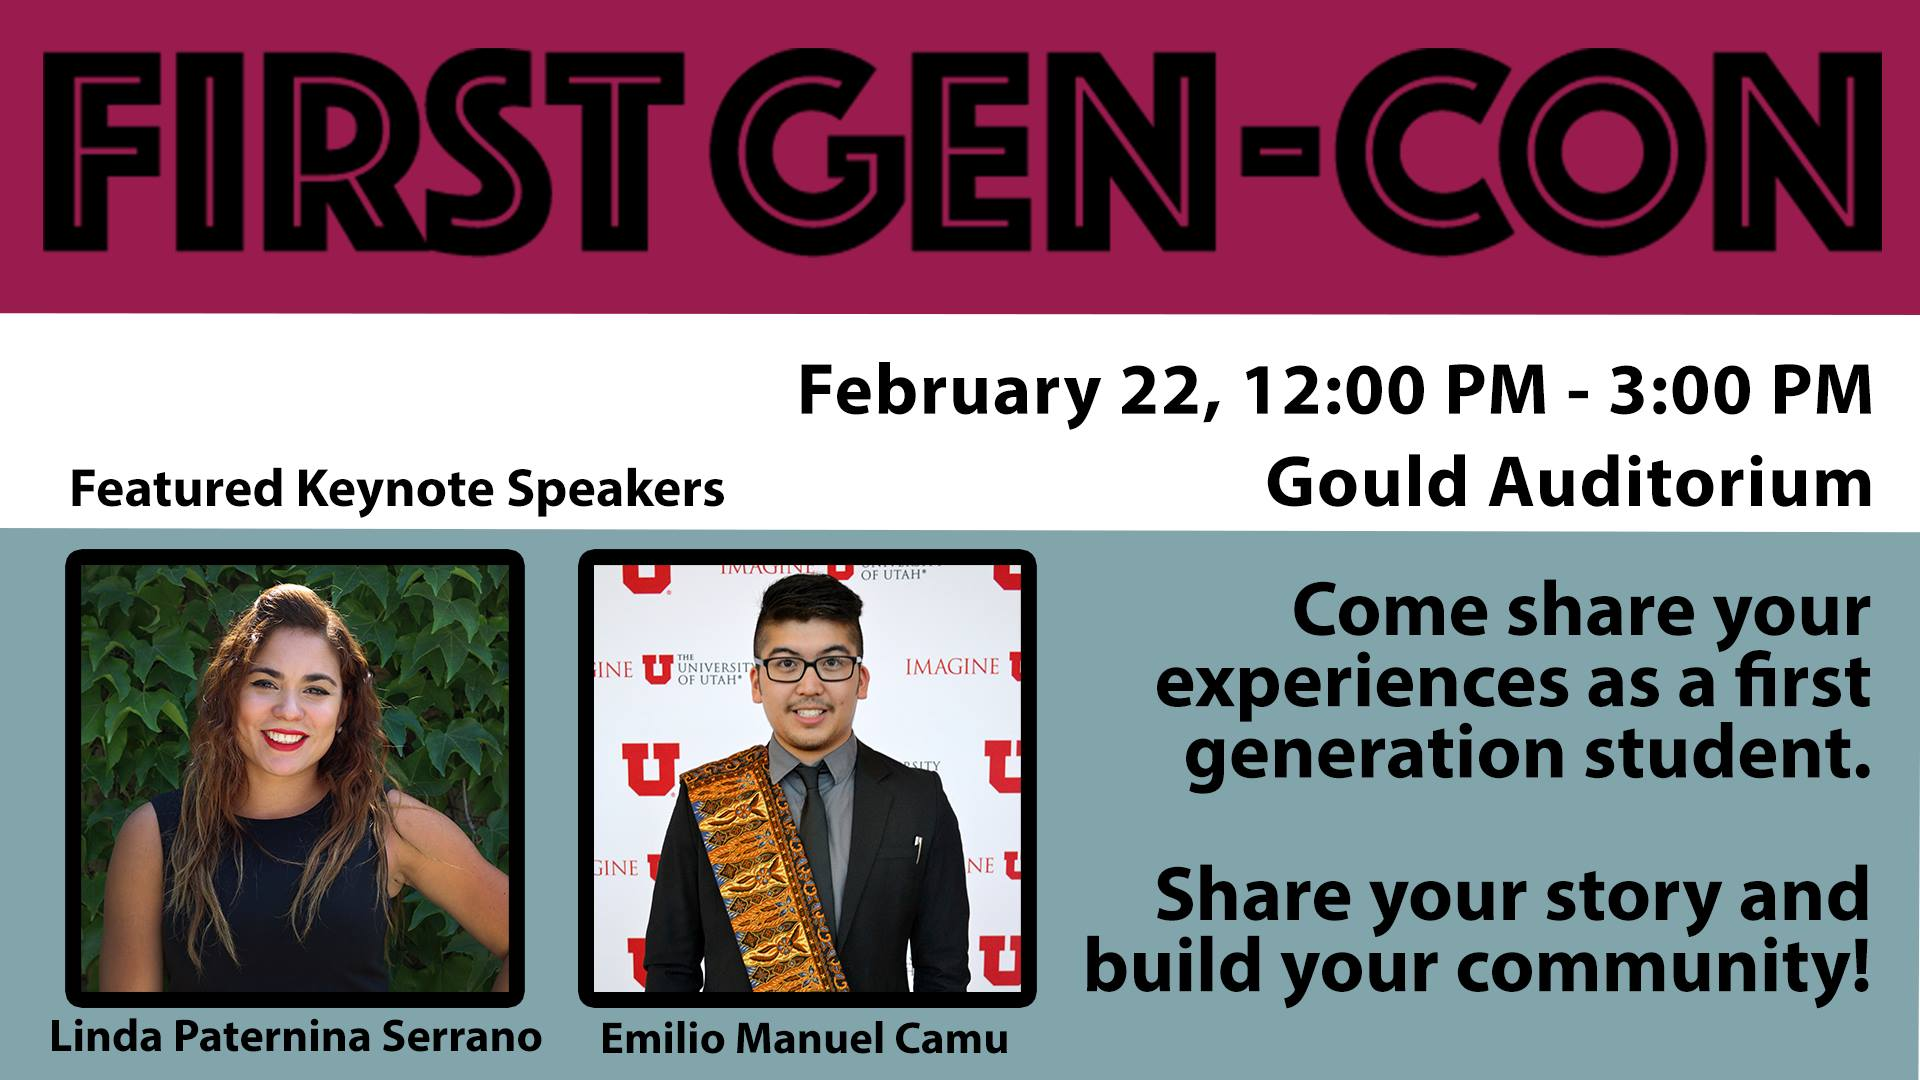 Come share your experiences as a first generation student. Share your story and build your community!